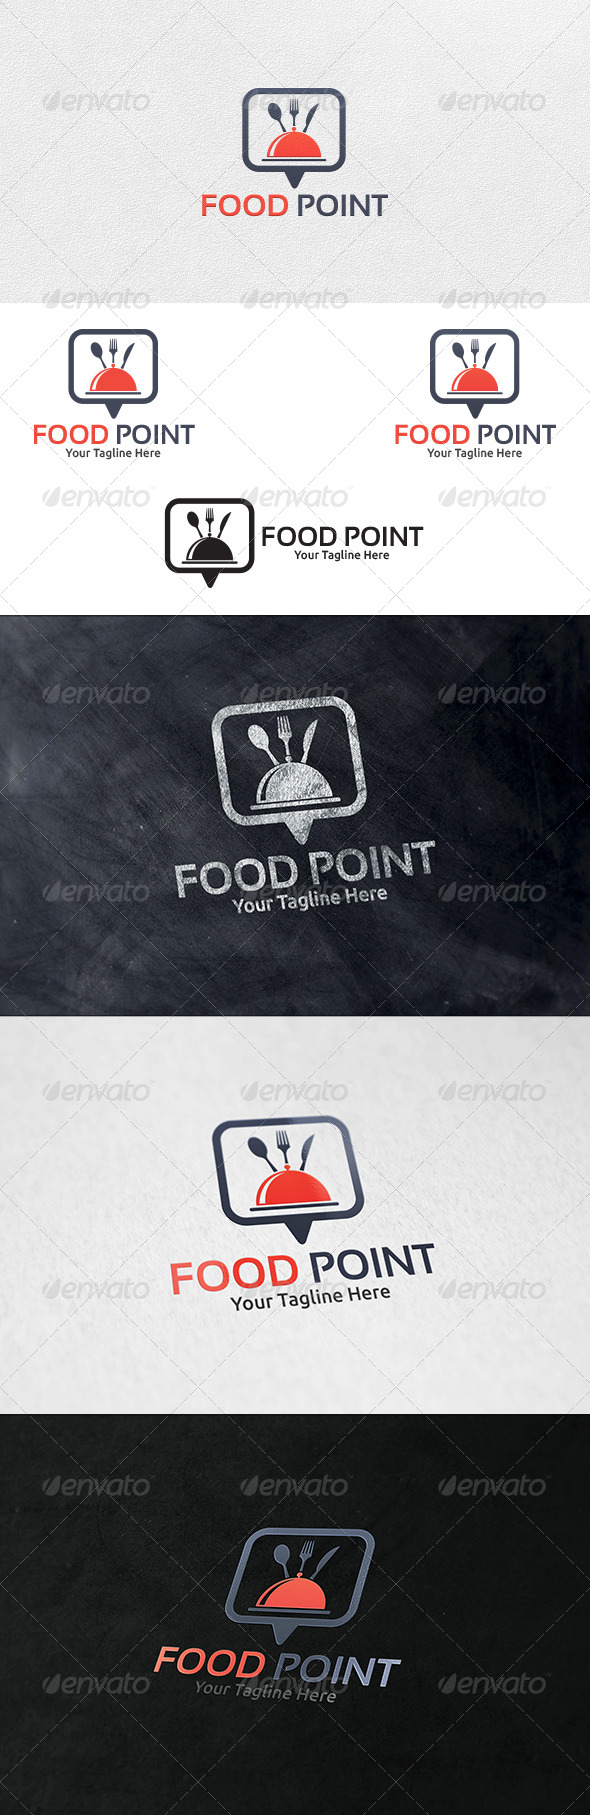 Food Point V2 - Logo Template - Food Logo Templates